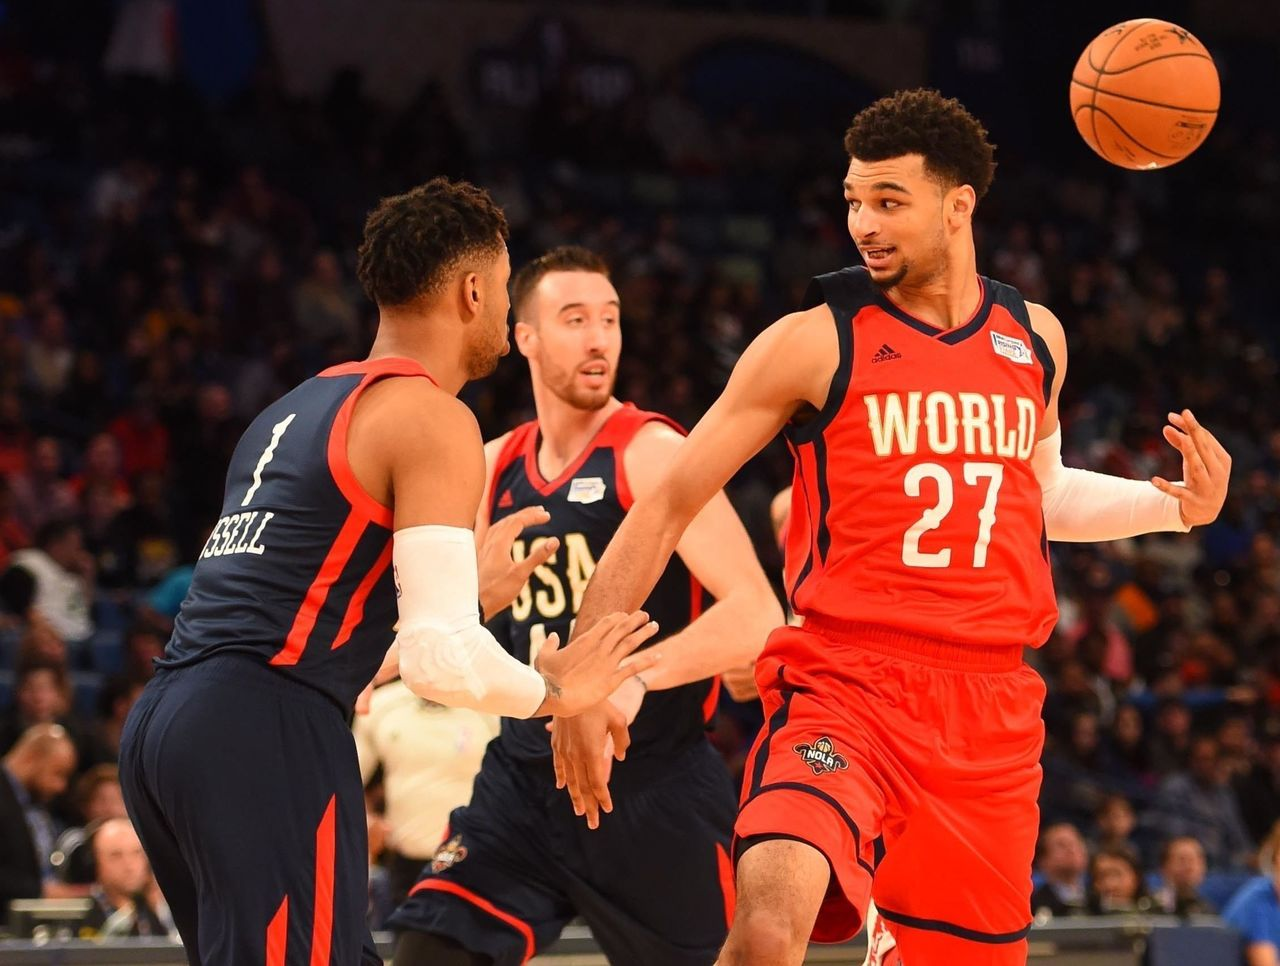 Team World Tops Team Usa In Rising Stars Challenge